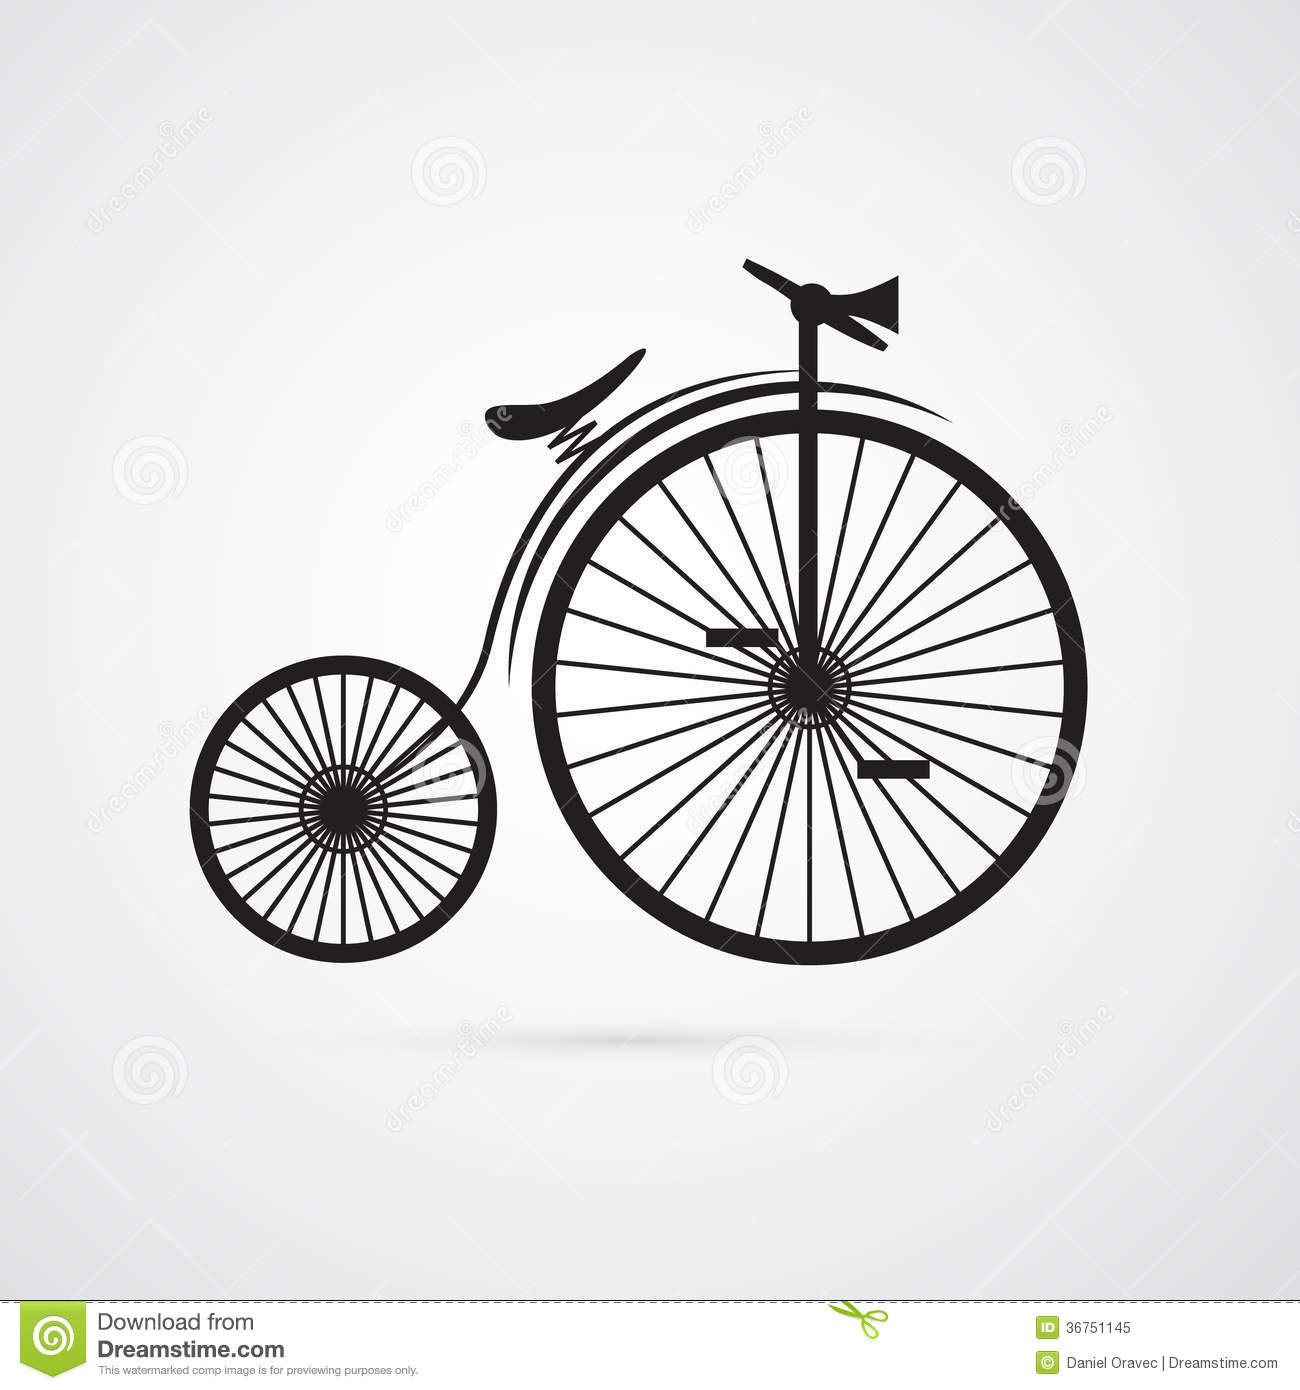 Abstract Vector Old, Vintage Bicycle, Bike Stock Vector ...